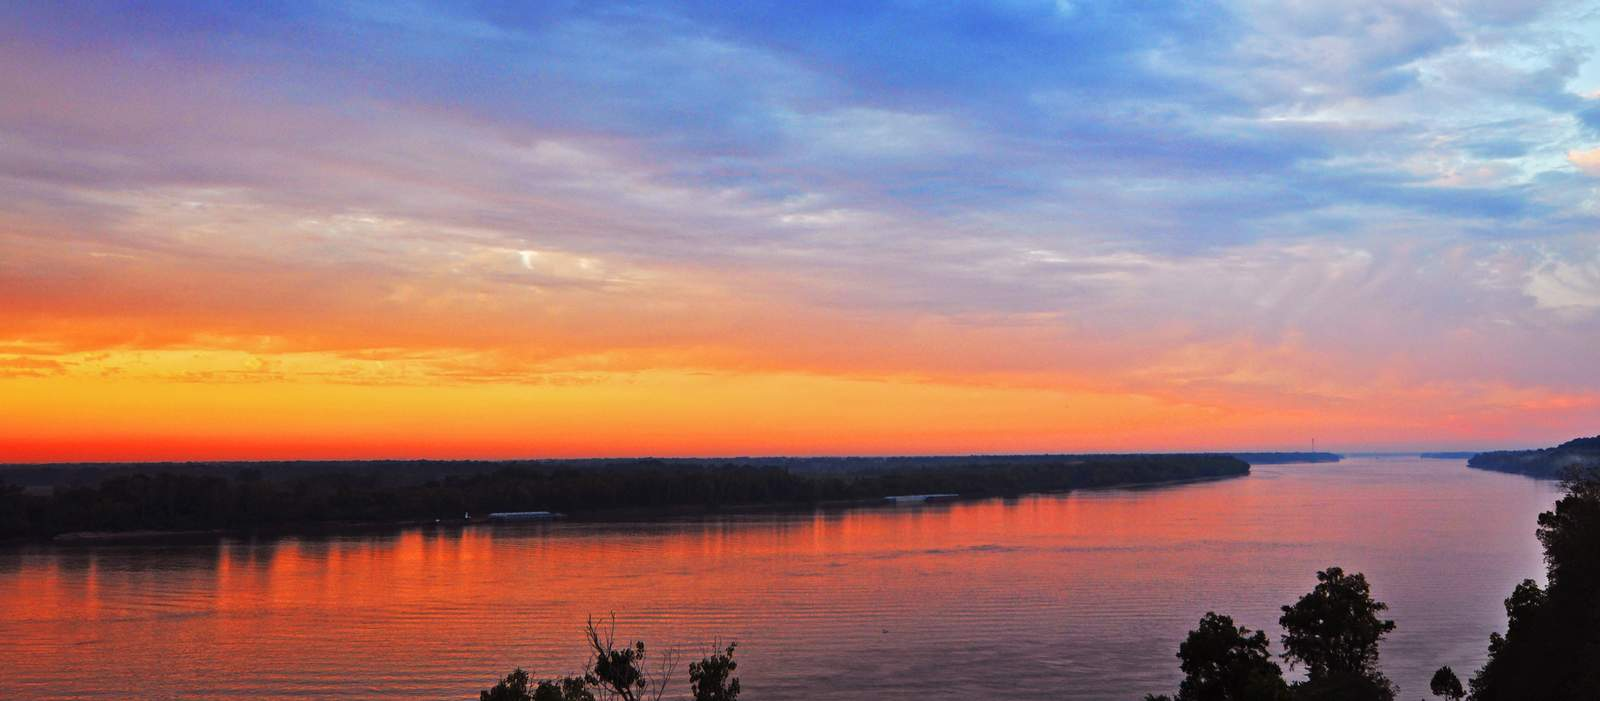 Abendstimmung am Mississippi River